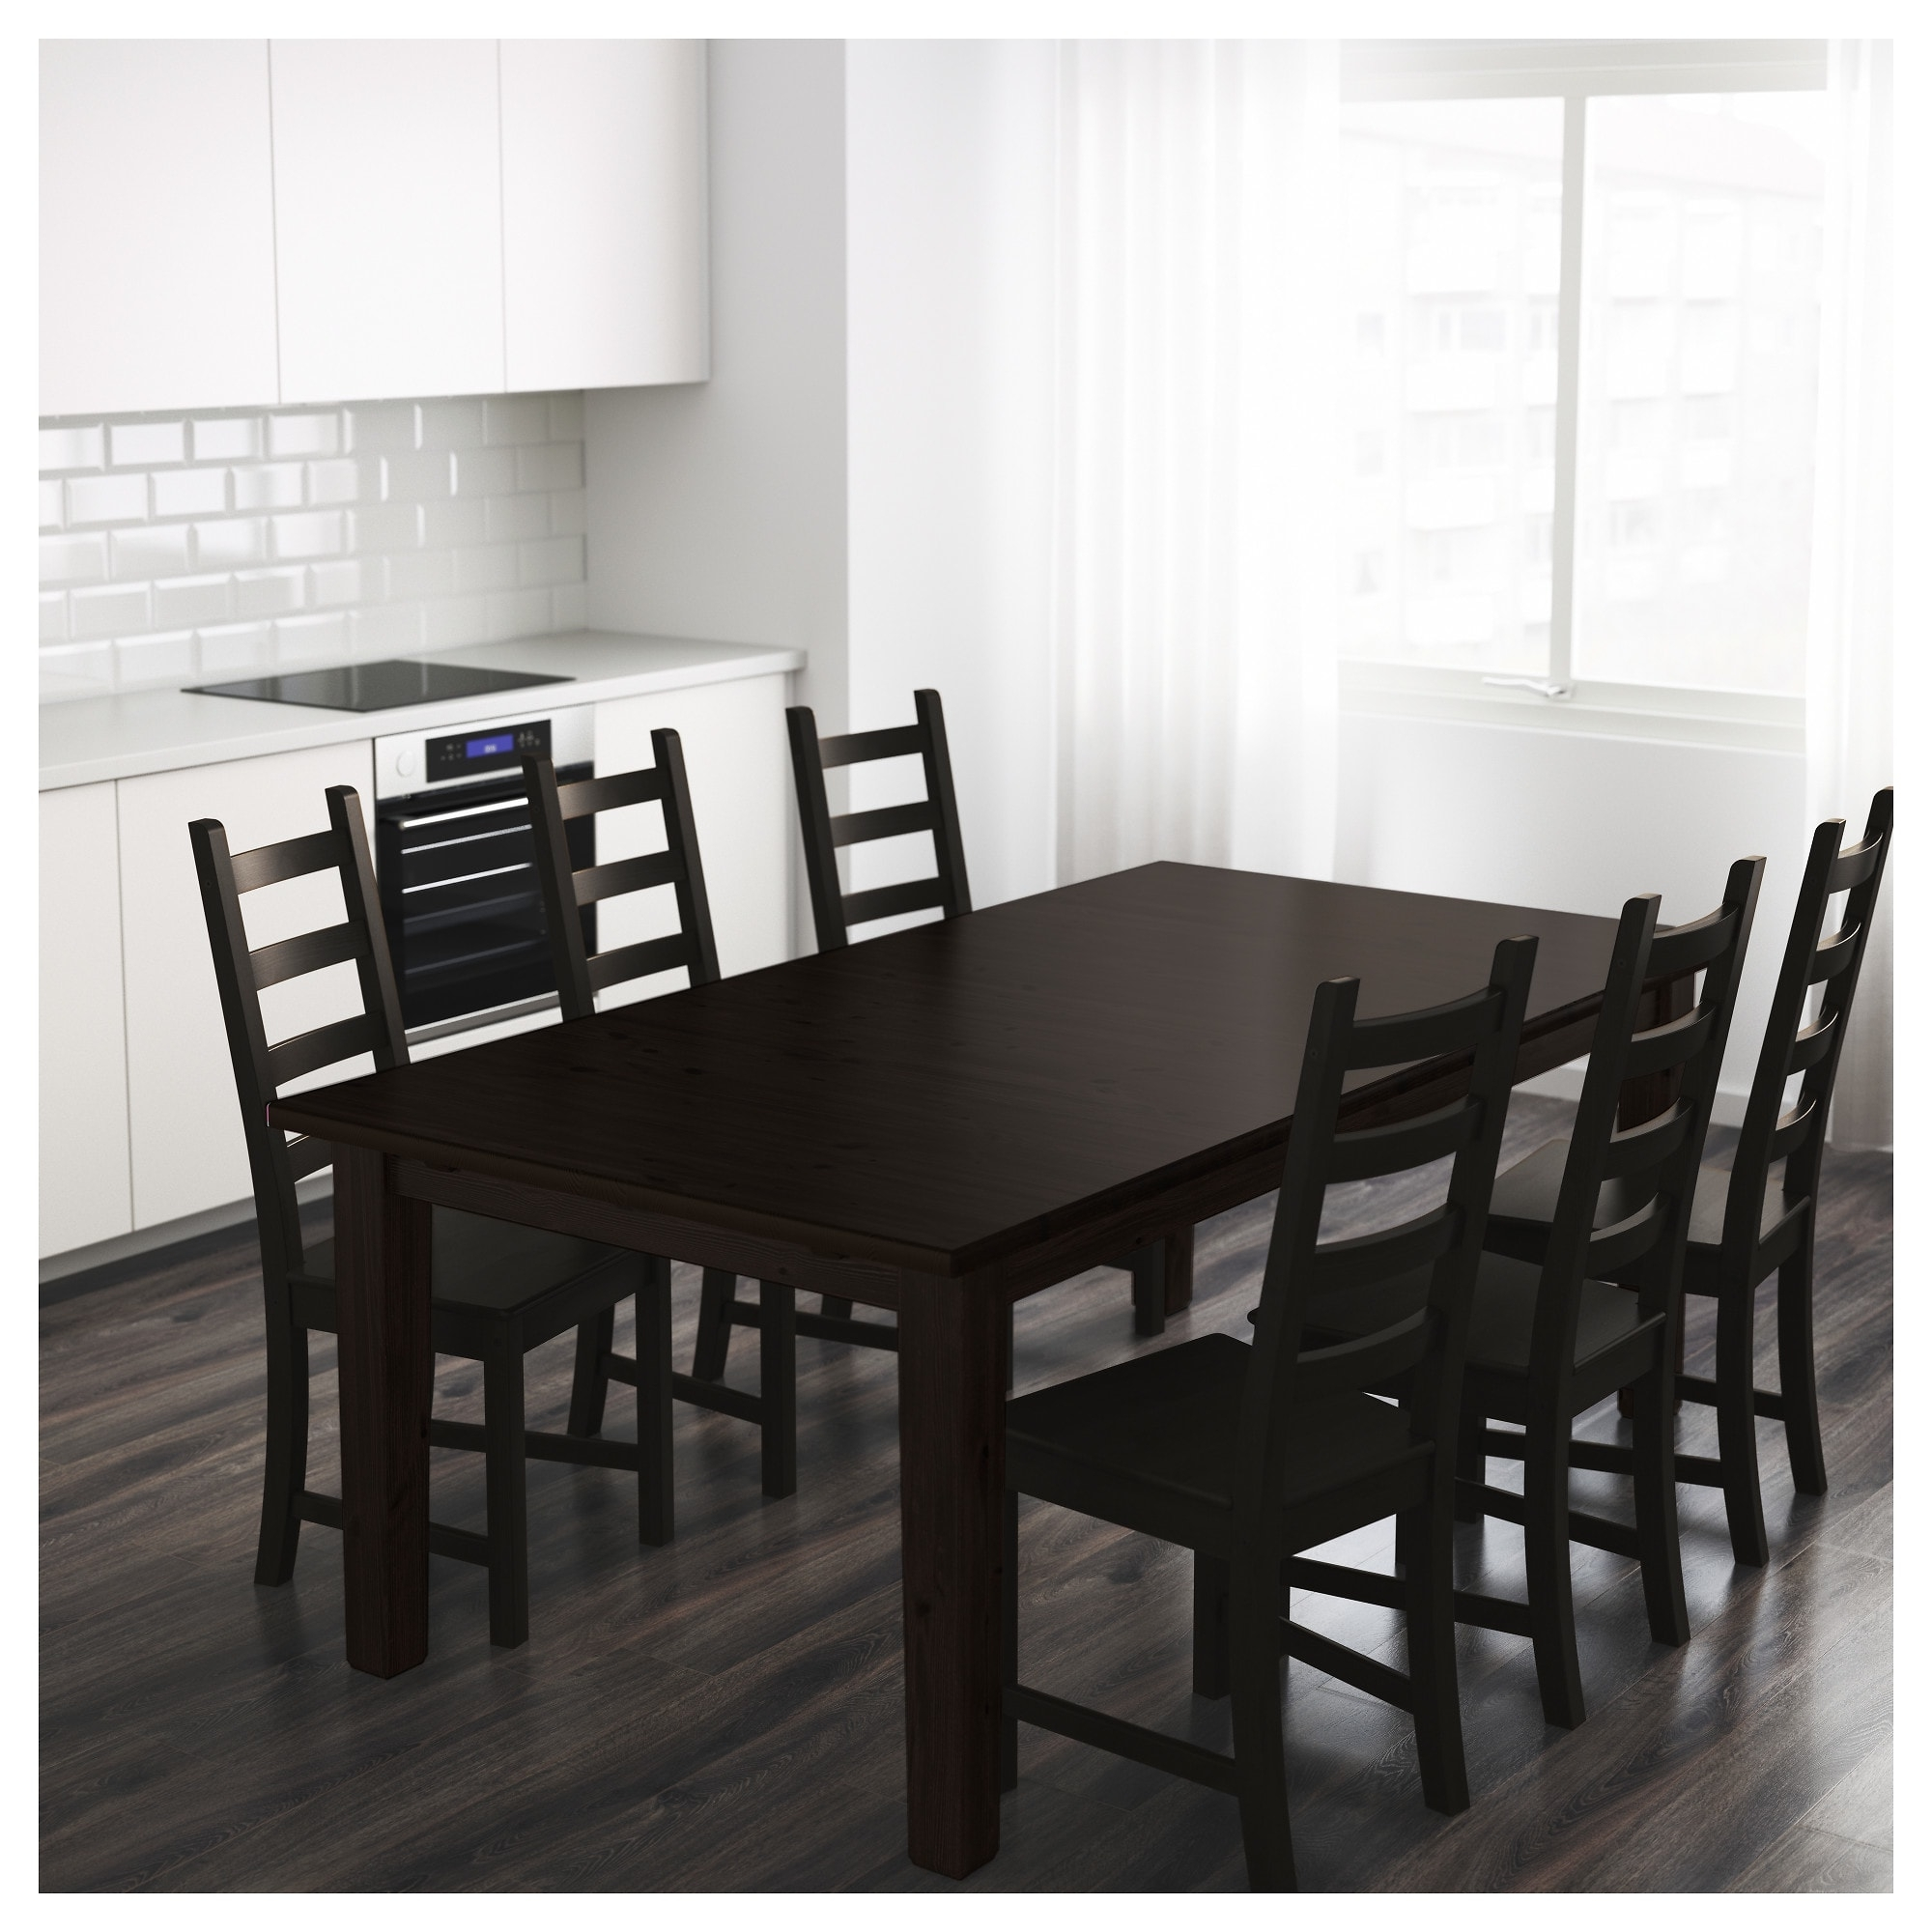 Preferred Black Extending Dining Tables In Stornäs Extendable Table Brown Black 201/247/293 X 105 Cm – Ikea (Gallery 18 of 25)